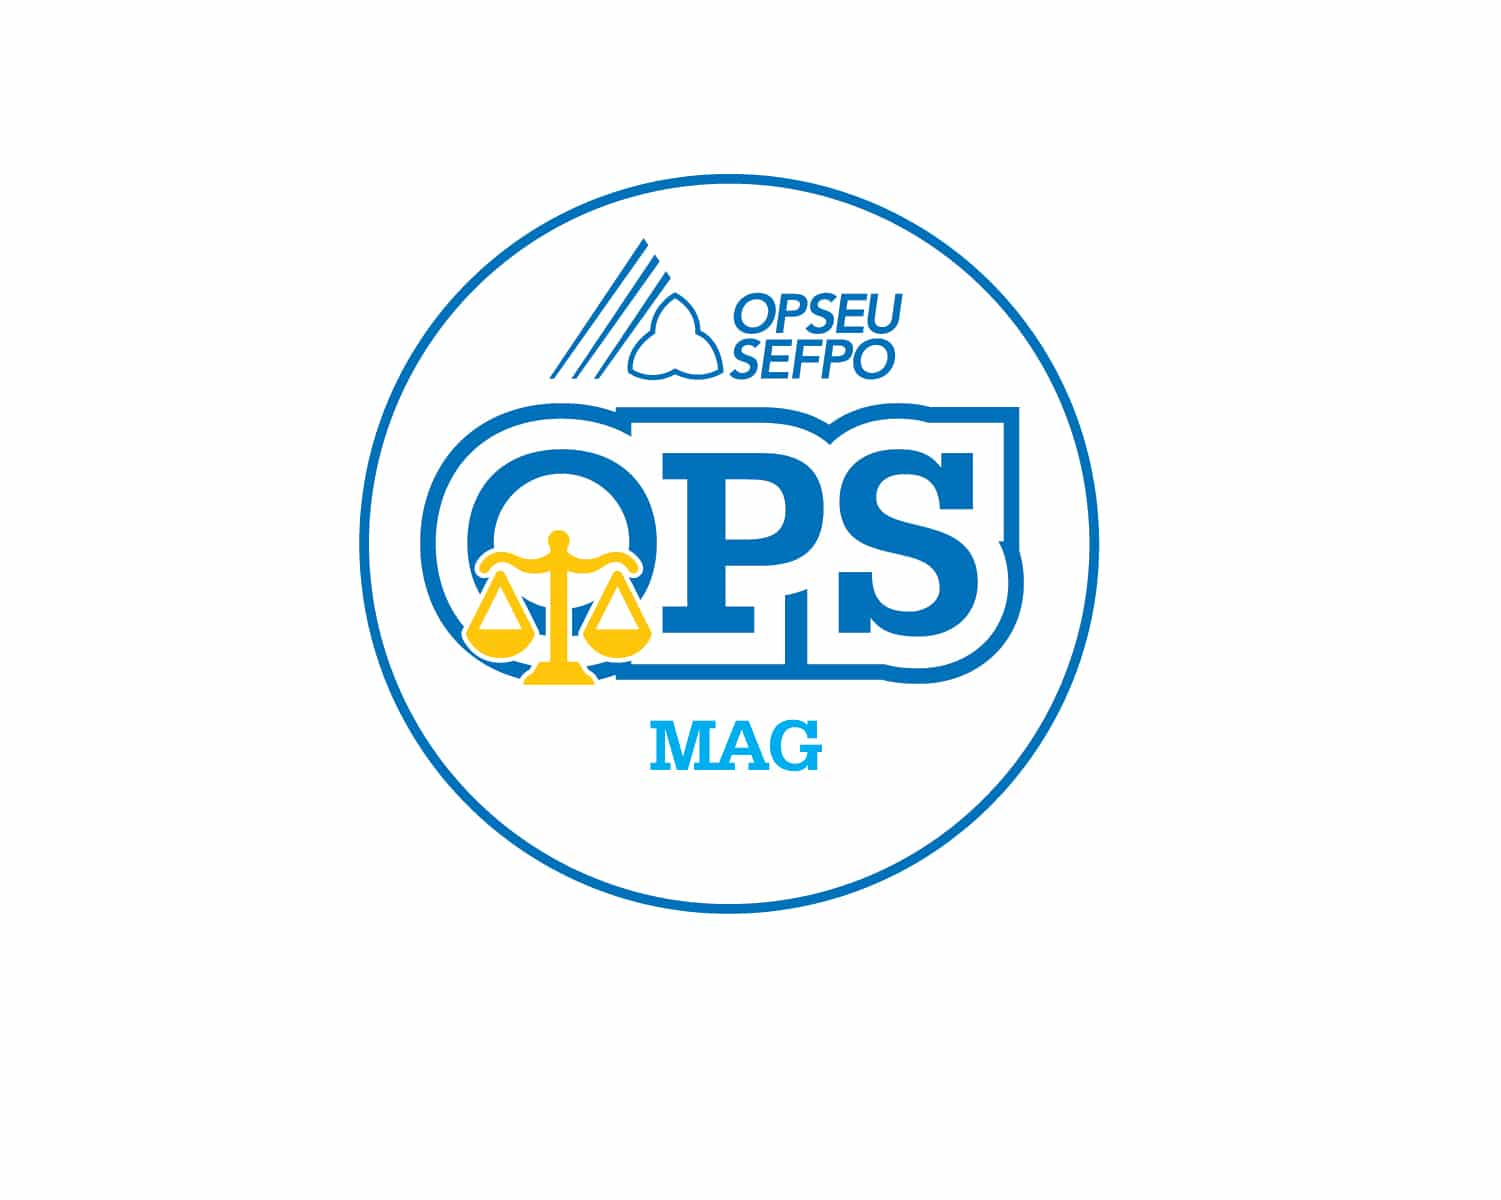 OPSEU/SEFPO files health and safety appeal to protect members in court